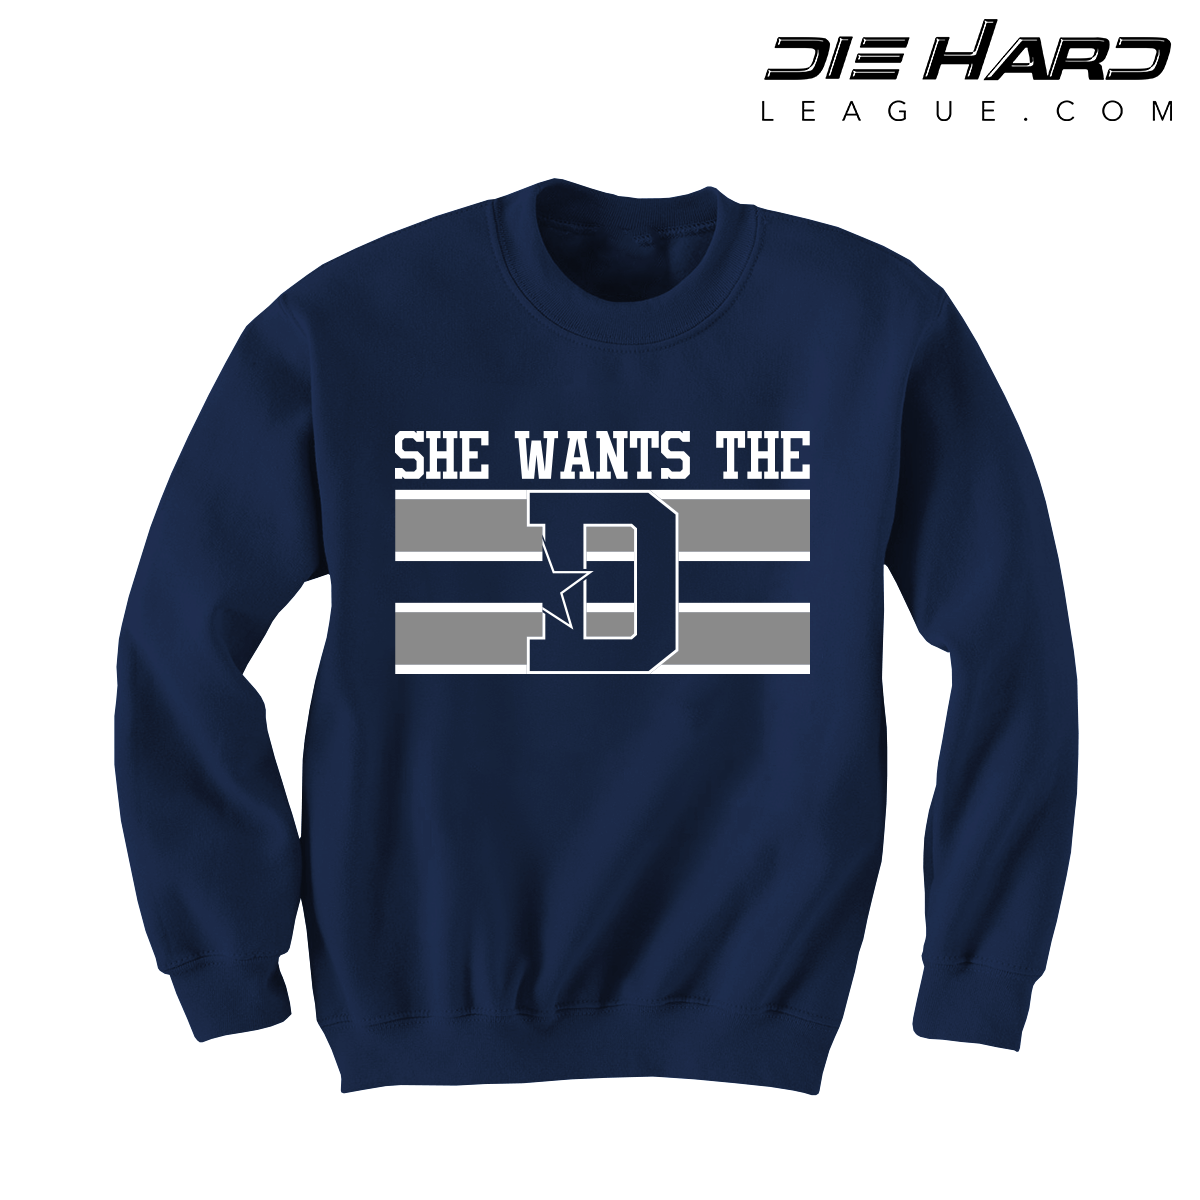 Shop. Home Dallas Cowboys Apparel Cowboys Sweaters Funny Dallas Cowboys  Memes – Dallas Cowboys Sweatshirt f1ede68fe